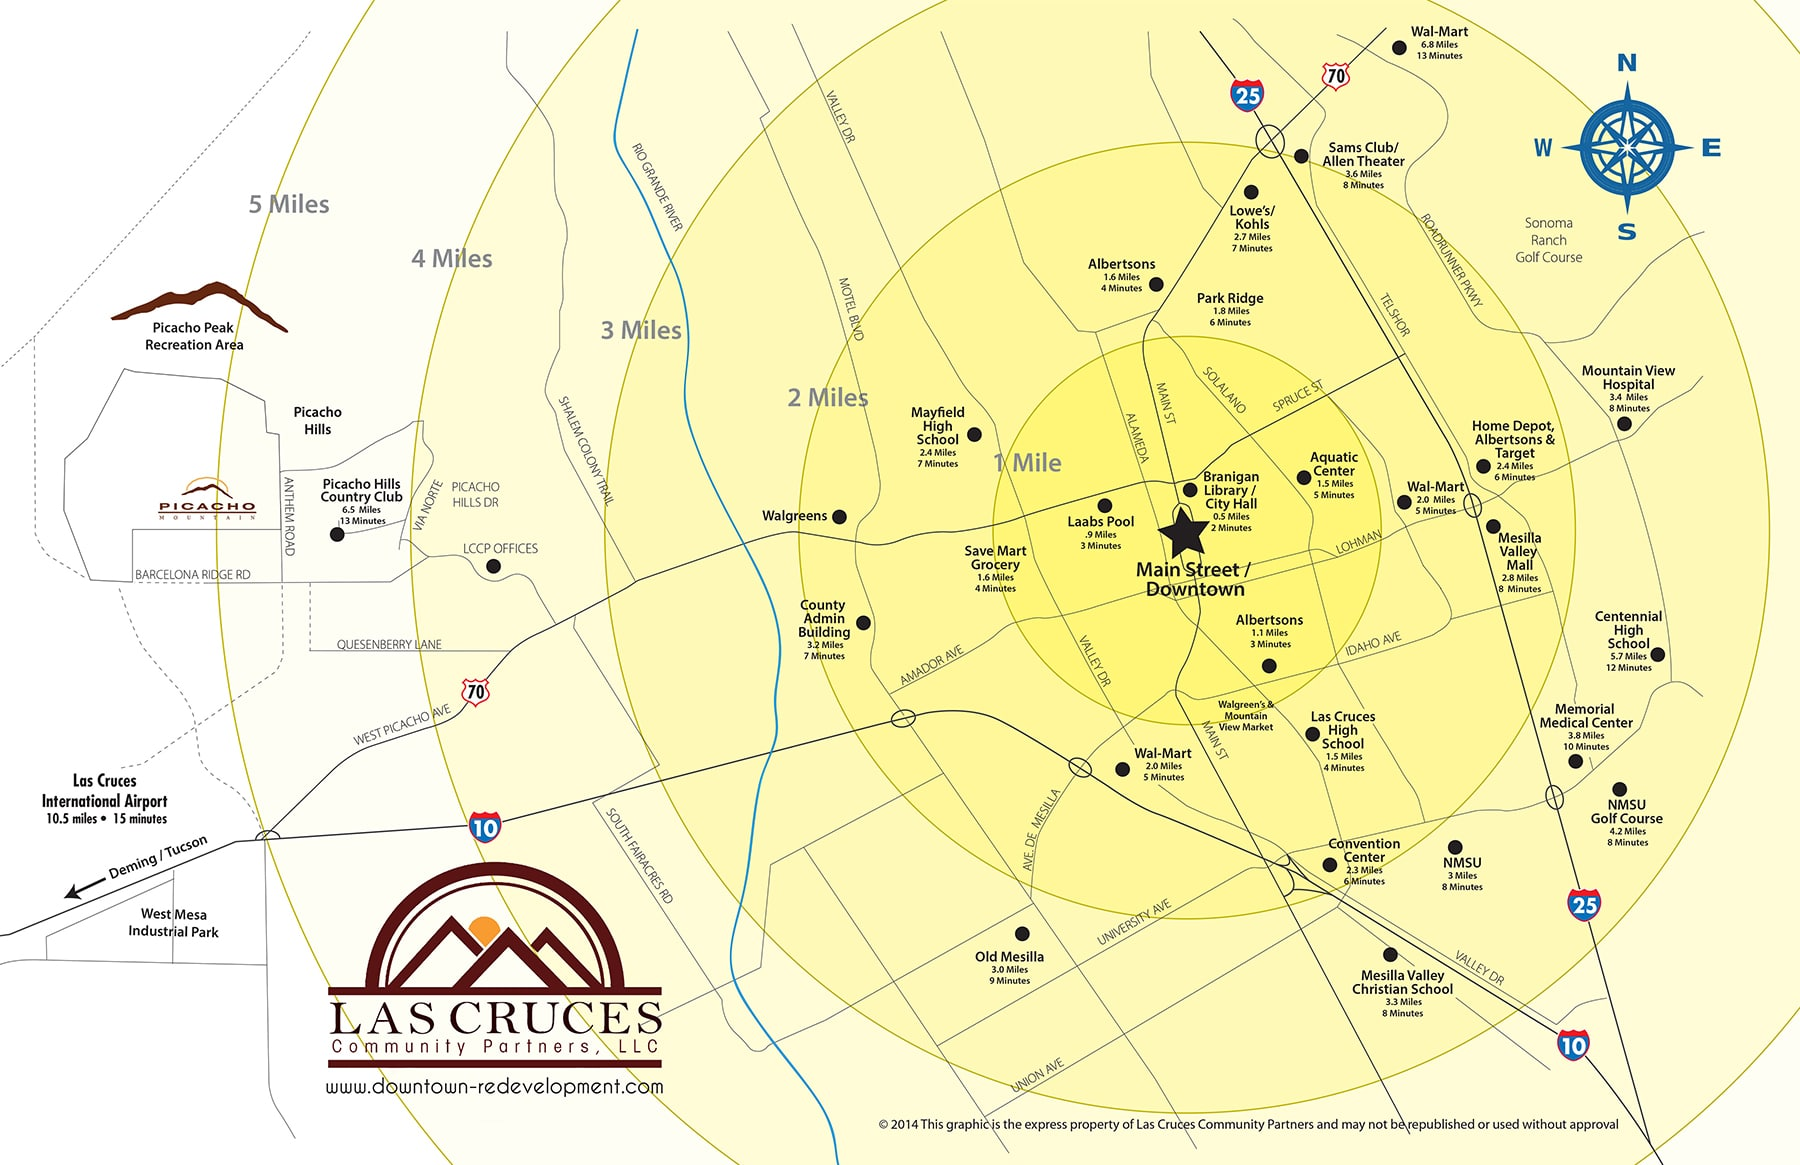 las cruces downtown distance map